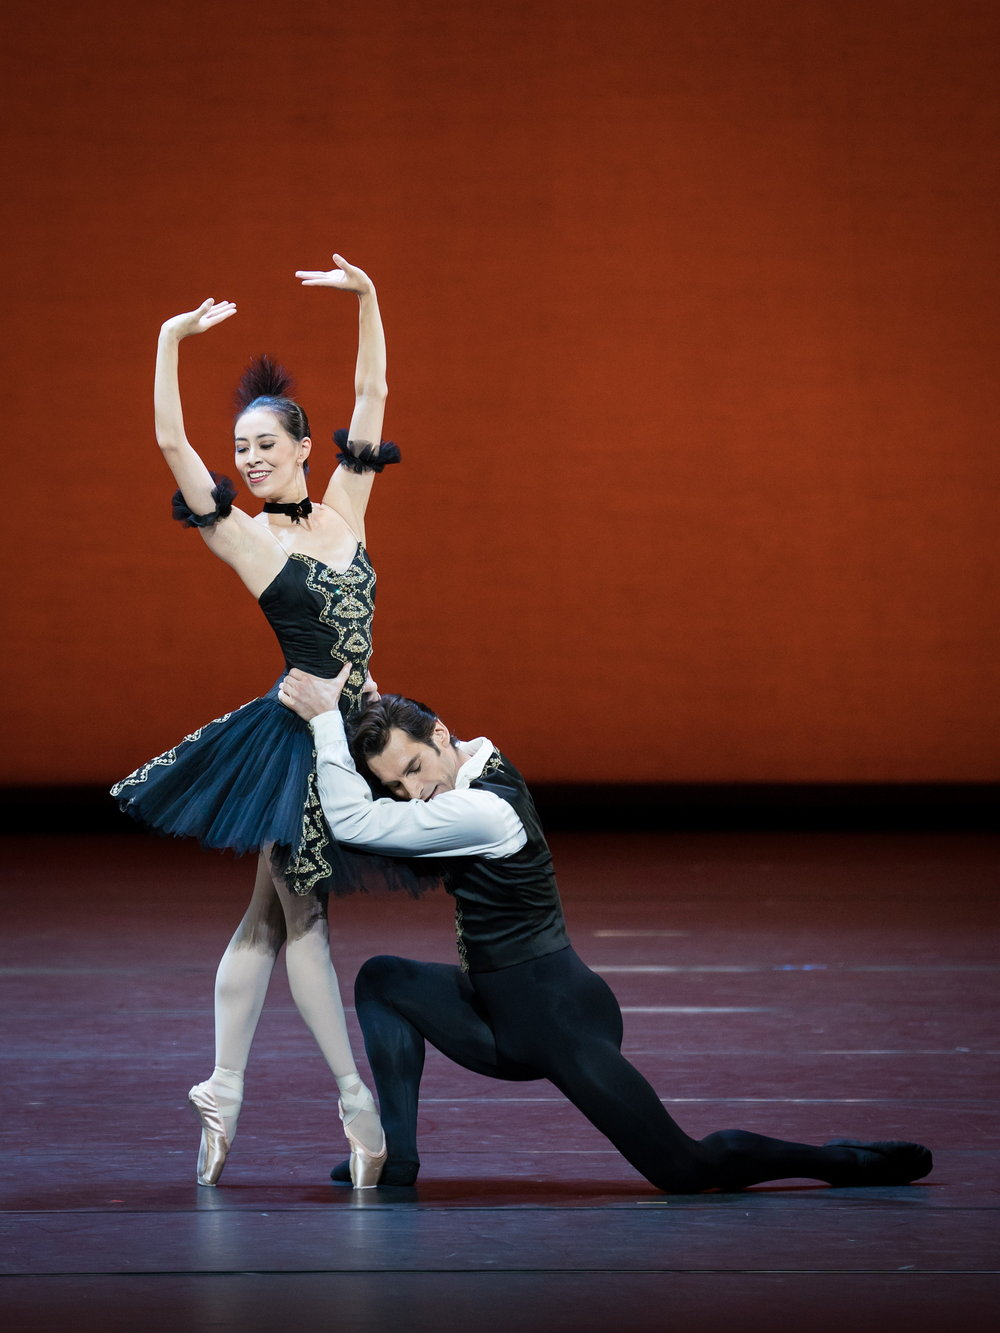 Kyioka Hashimoto and Mihail Sosnovschi. Copyright: Vienna State Ballet/Ashley taylor